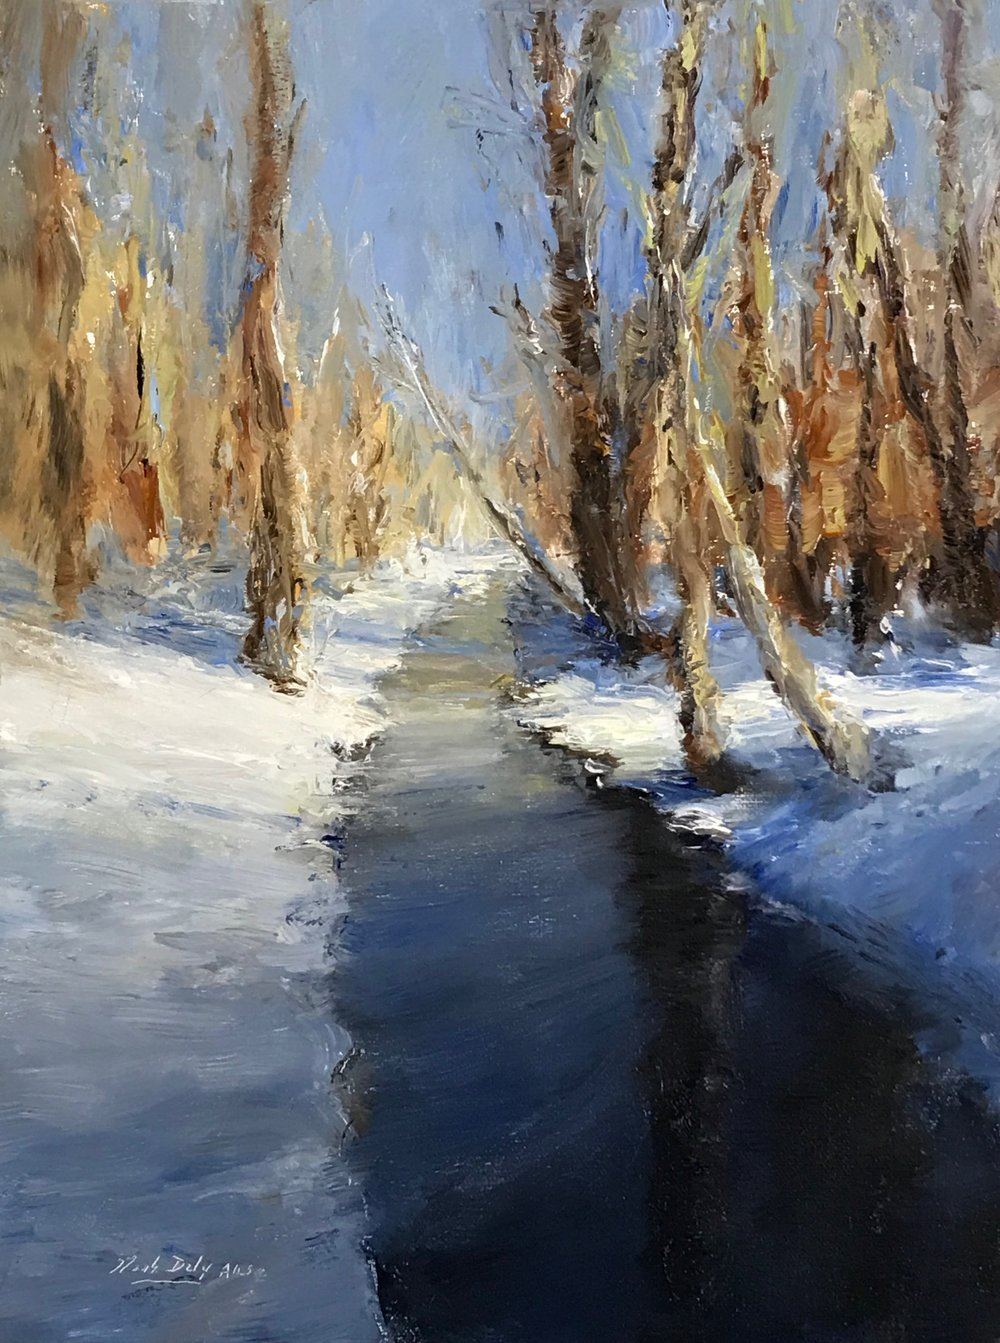 "Snowy Shadows, Oil on linen, 12"" x 9."" Signed lower left by Mark Daly. Available at Castle Gallery."